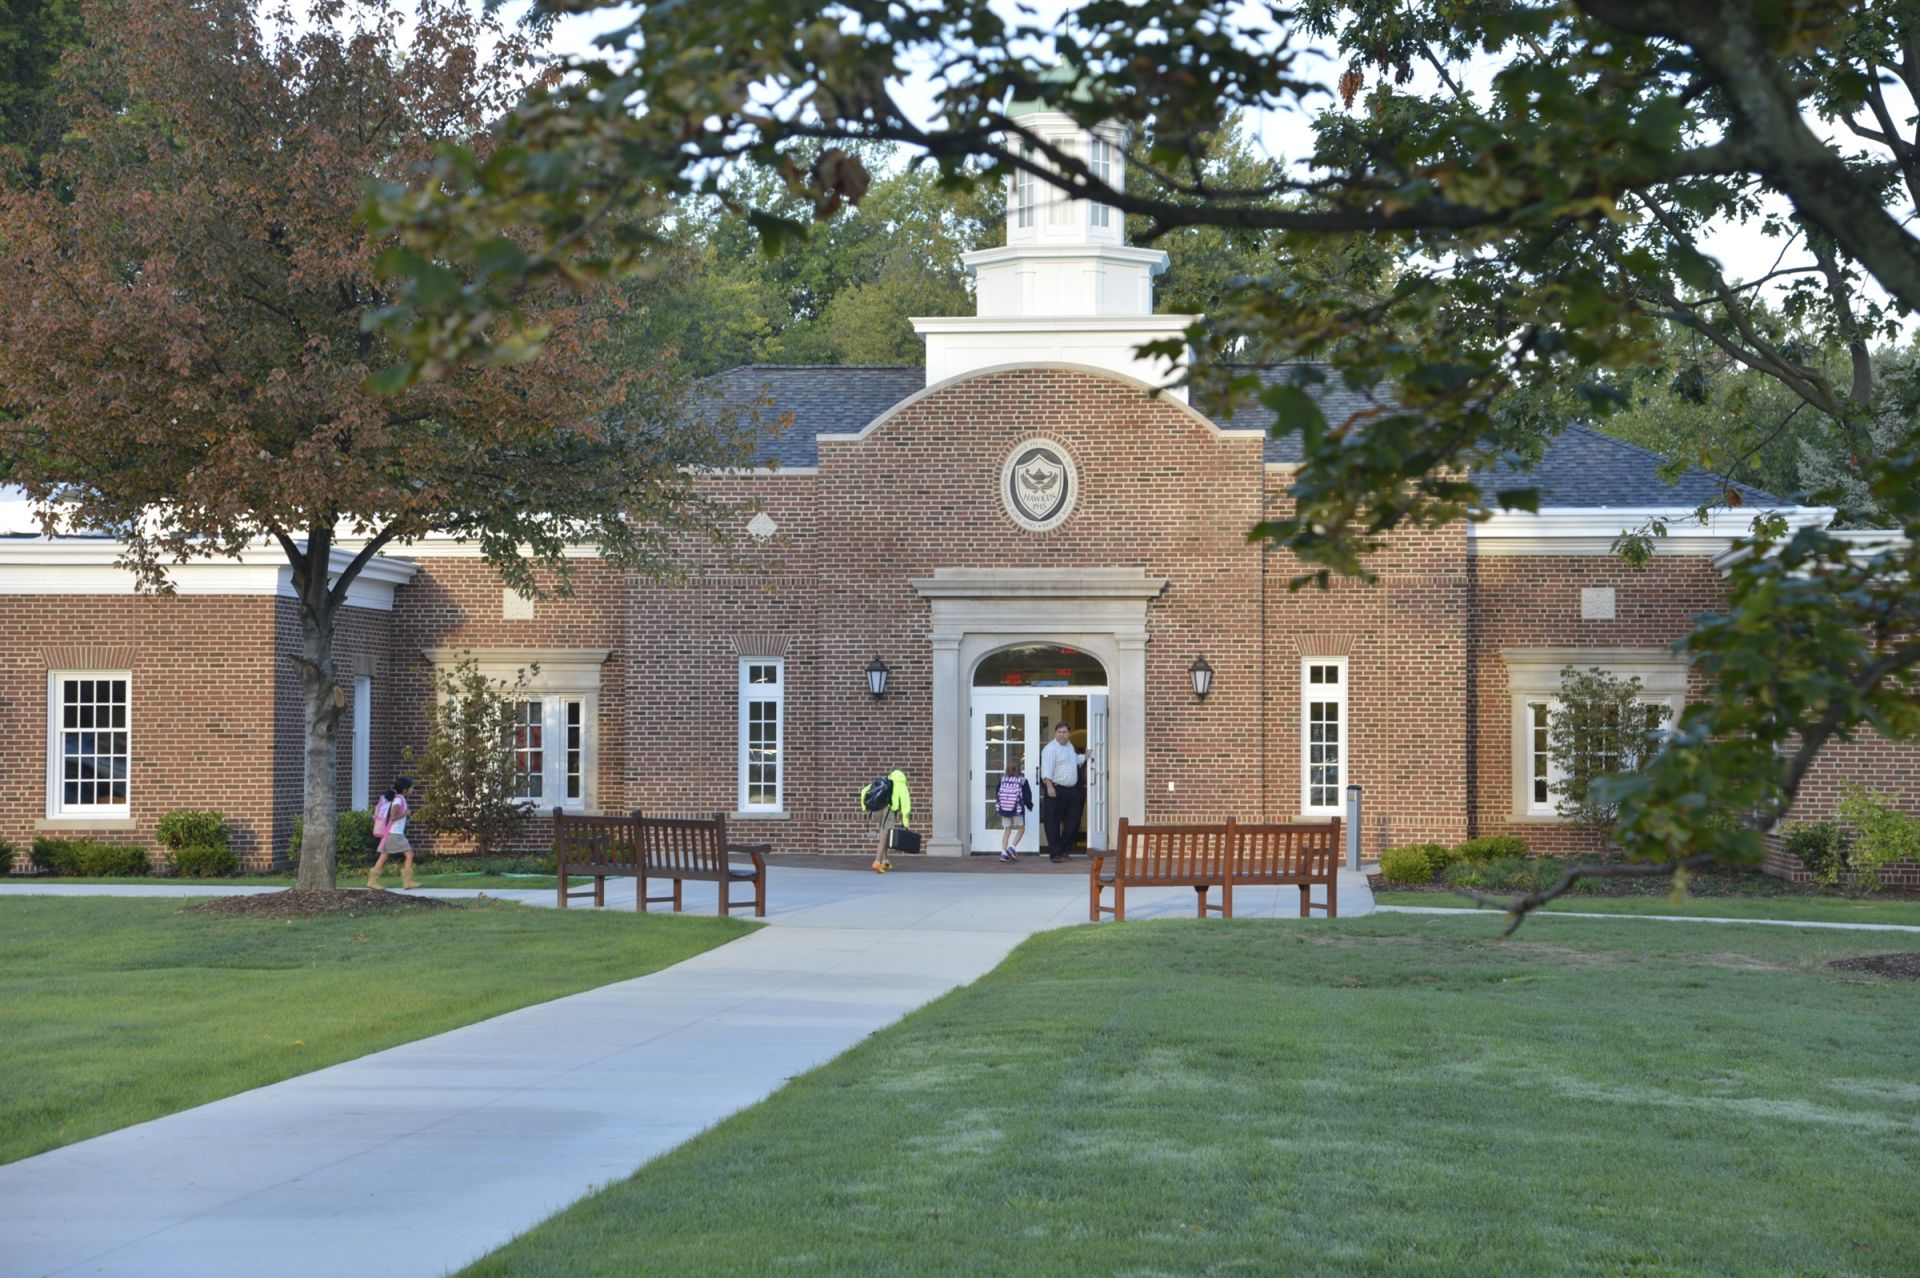 The Lower School entrance.